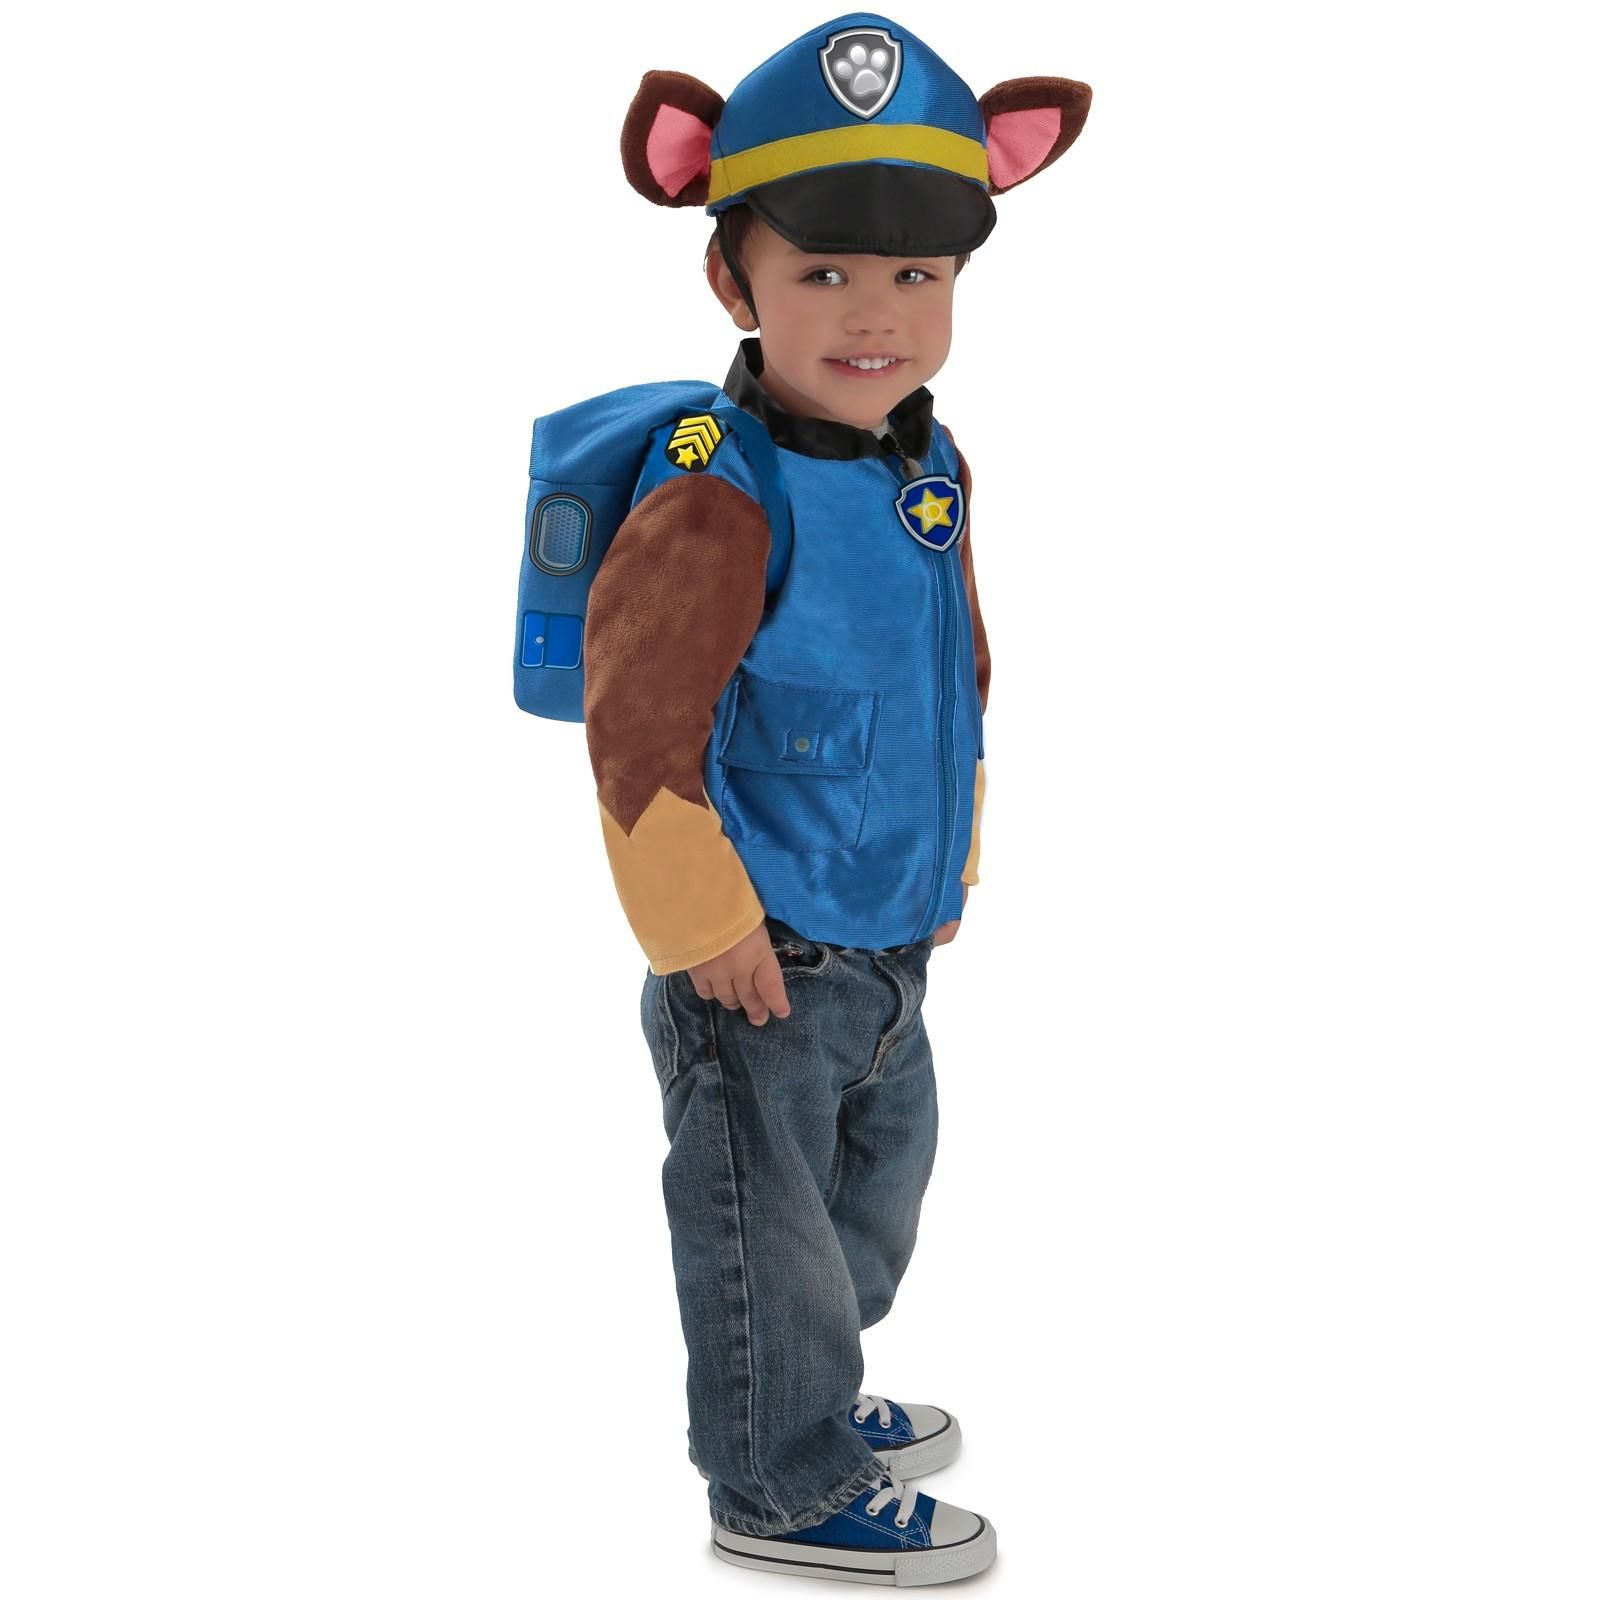 Paw Patrol Chase Costume for Toddlers | Avery | Pinterest | Paw ...